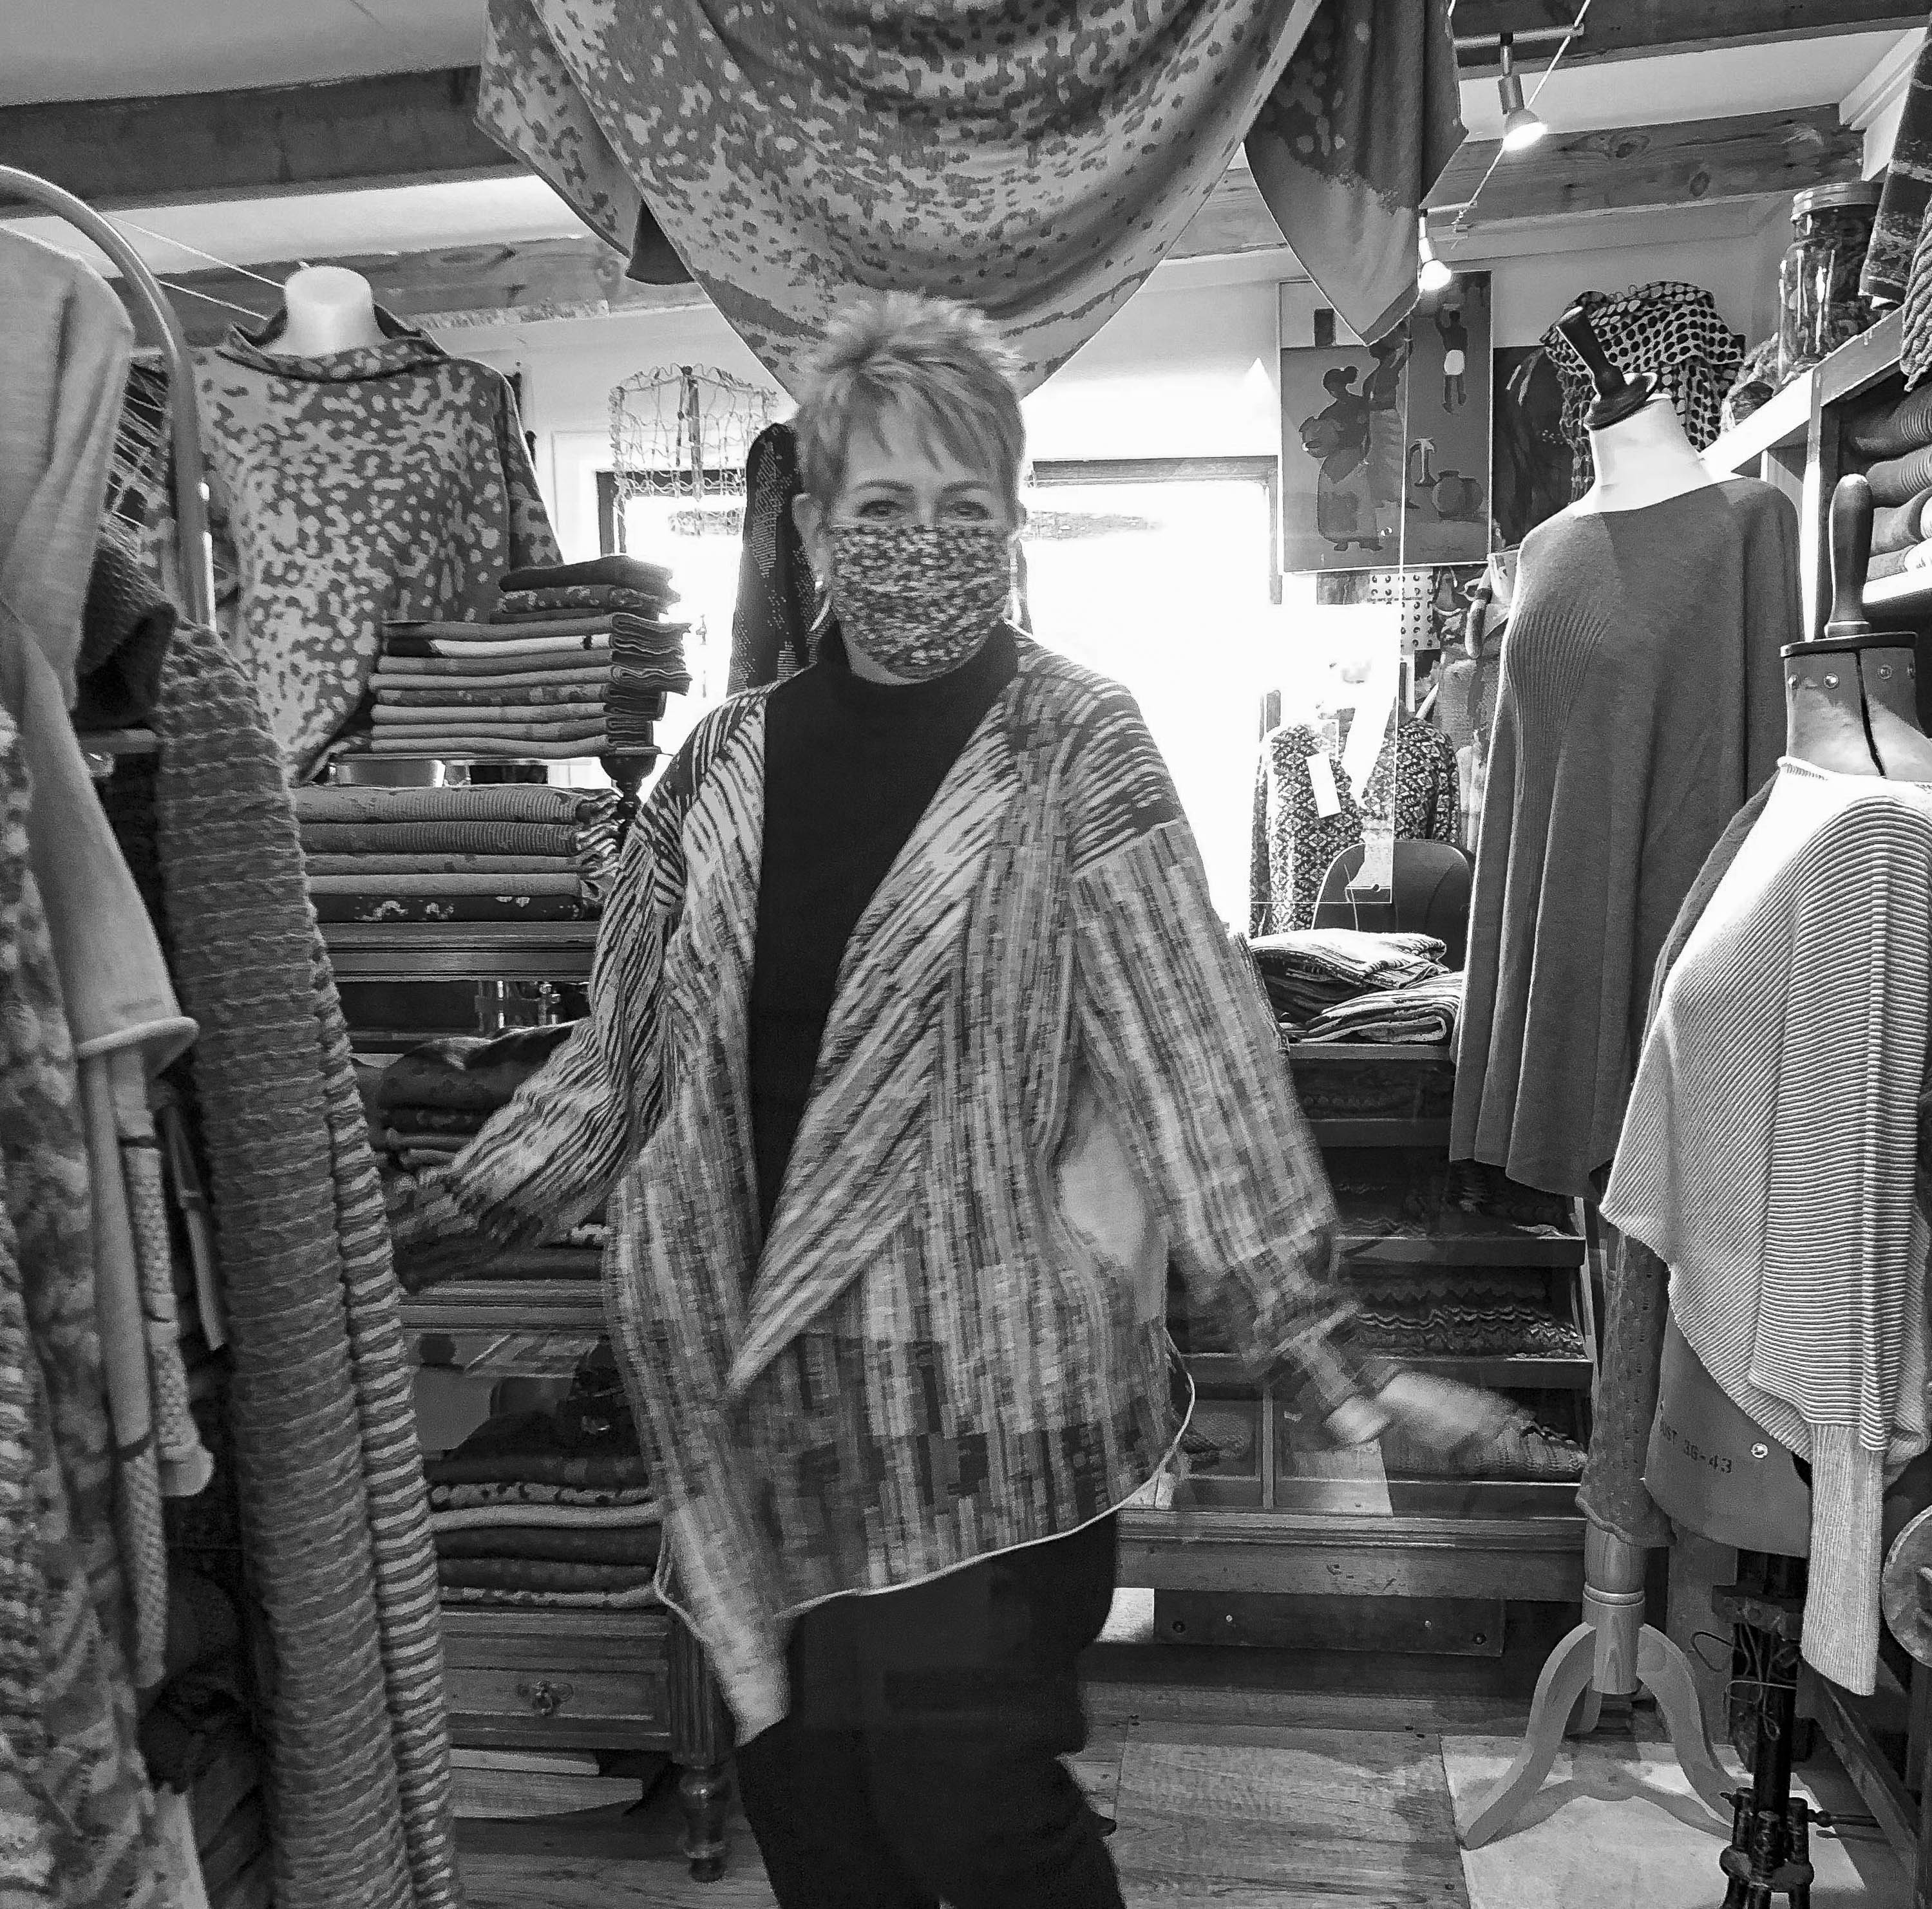 In the Nielanell knitwear studio, Hoswick, a woman wears an abstract, linear pattern knitted jacket. contemporary in style and with wide lapels